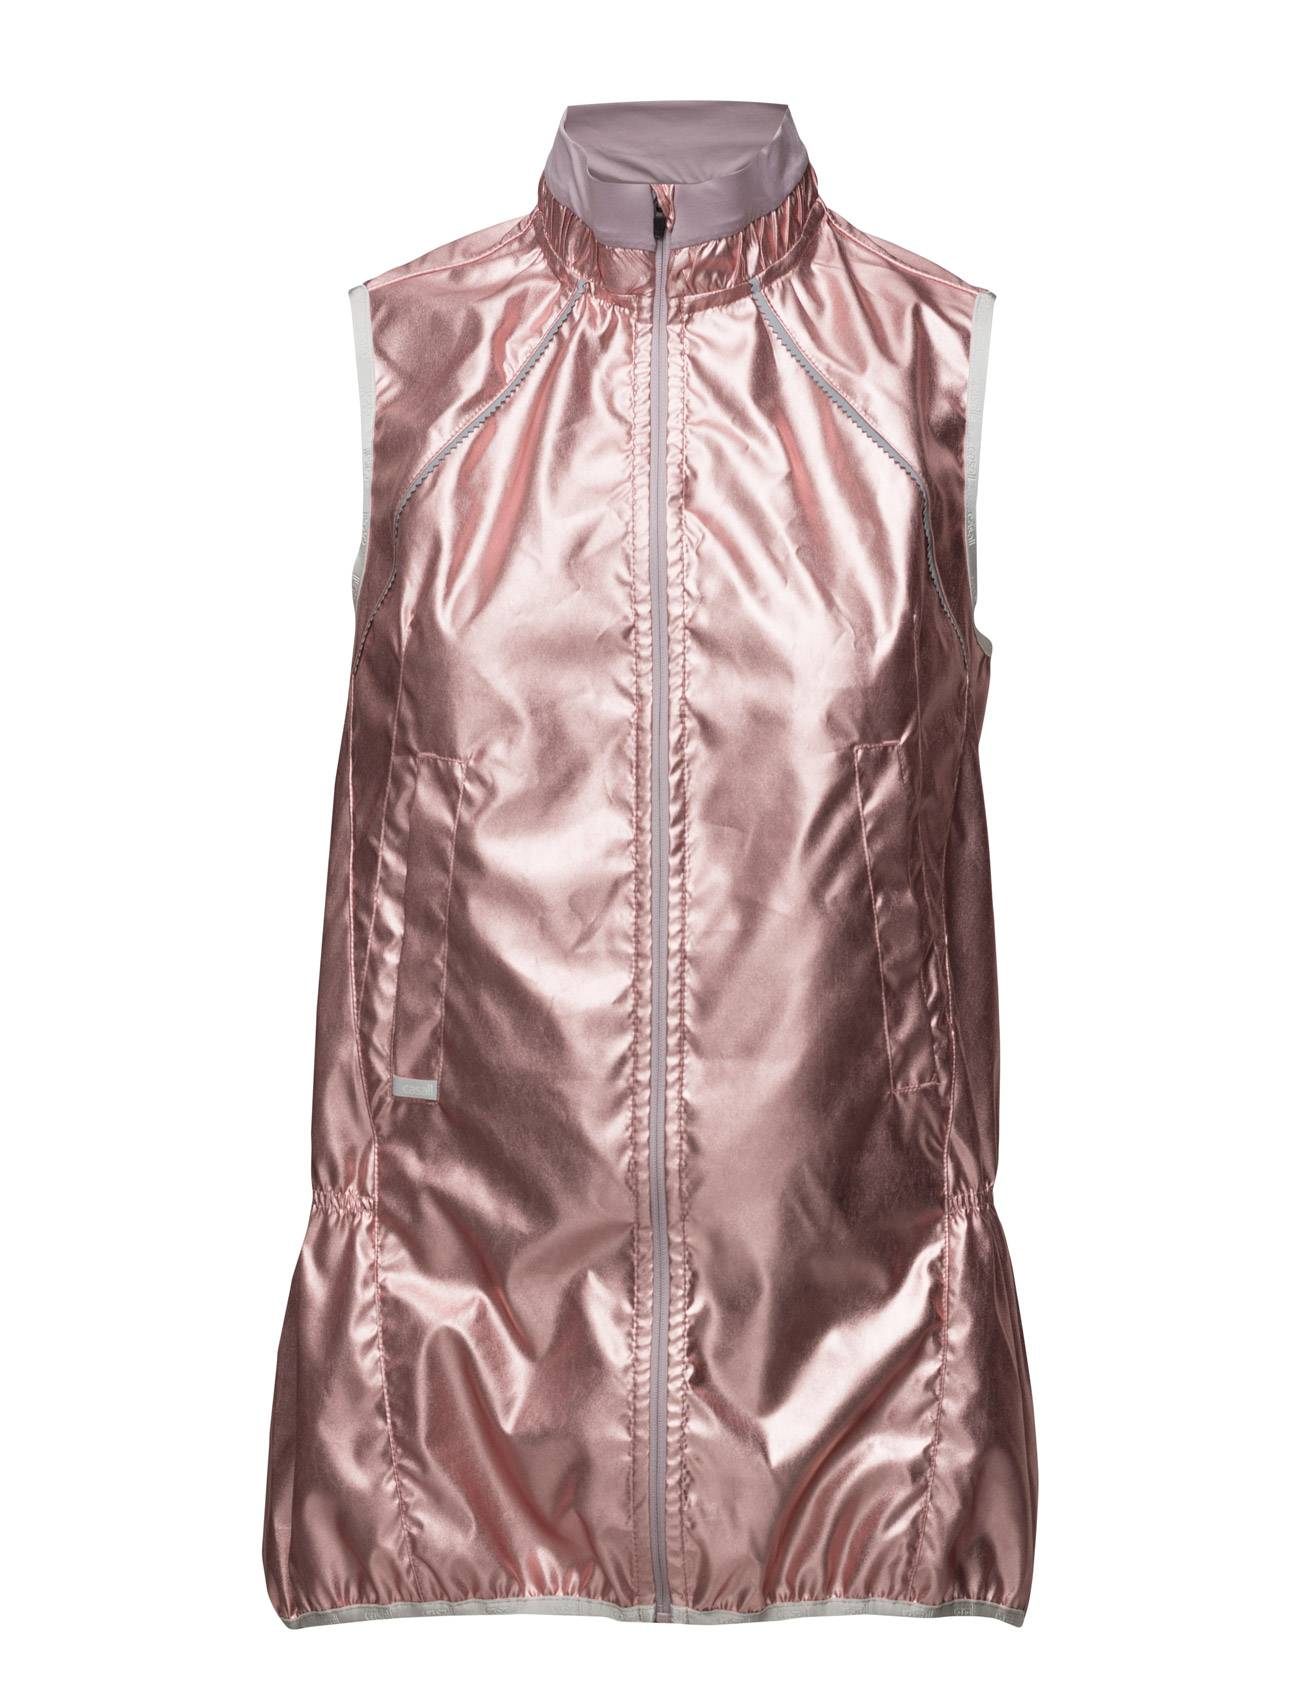 Casall Metallic Run Vest